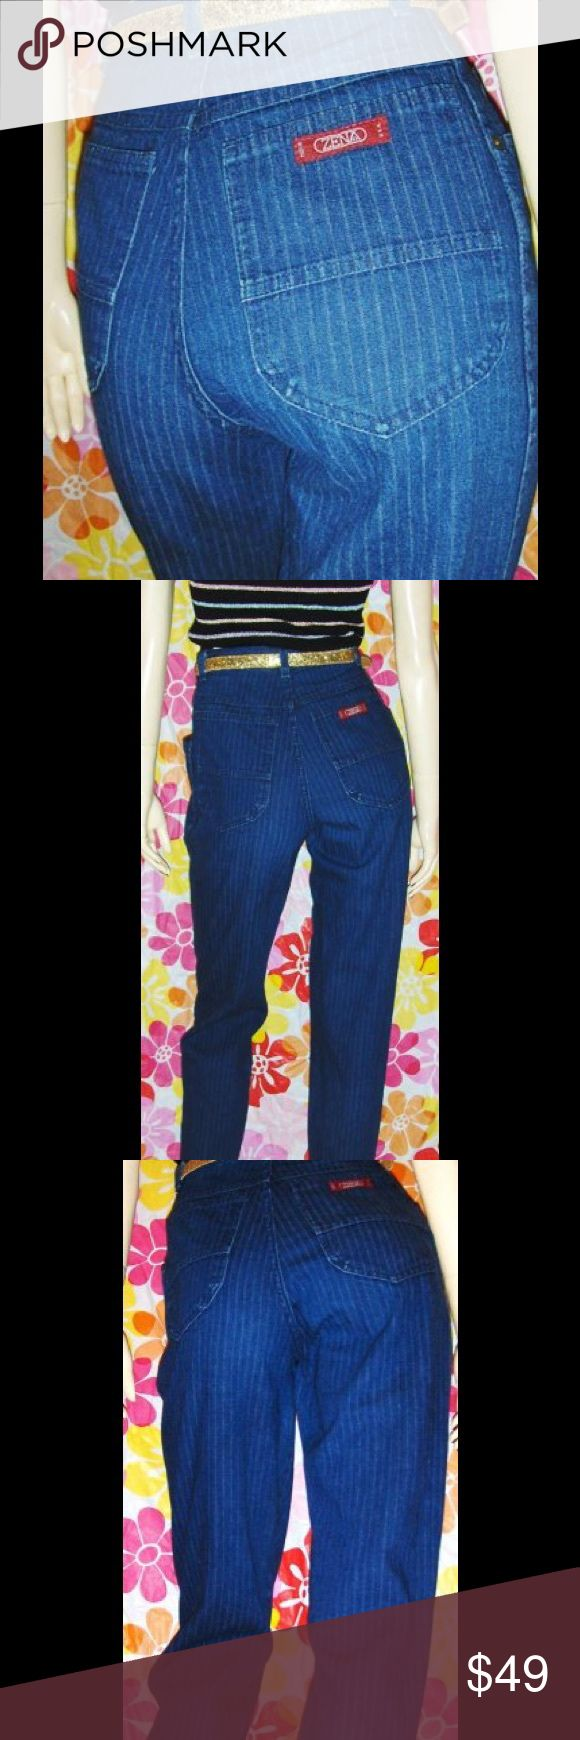 "VINTAGE 80s ZENA Hi-Waisted Denim DISCO JEANS ZENA... the must-have jeans for any 80's fashionista. These are in a blue denim pinstripe. High waisted fit, slim waist, cut fuller at hip & thigh, straight leg style. ZENA emblem on back pocket. Don't miss out on these RARE collectible classic 80's DISCO jeans!   DETAILS:   Size: N/A Fit like a Ladies S  Waist: 24 - 26"" at high Waist. Hips: 36""  Inseam: 30"" The rise is 12"".  Label: ZENA Fabric: Cotton Color: Dark blue  Vintage Condition: EX…"